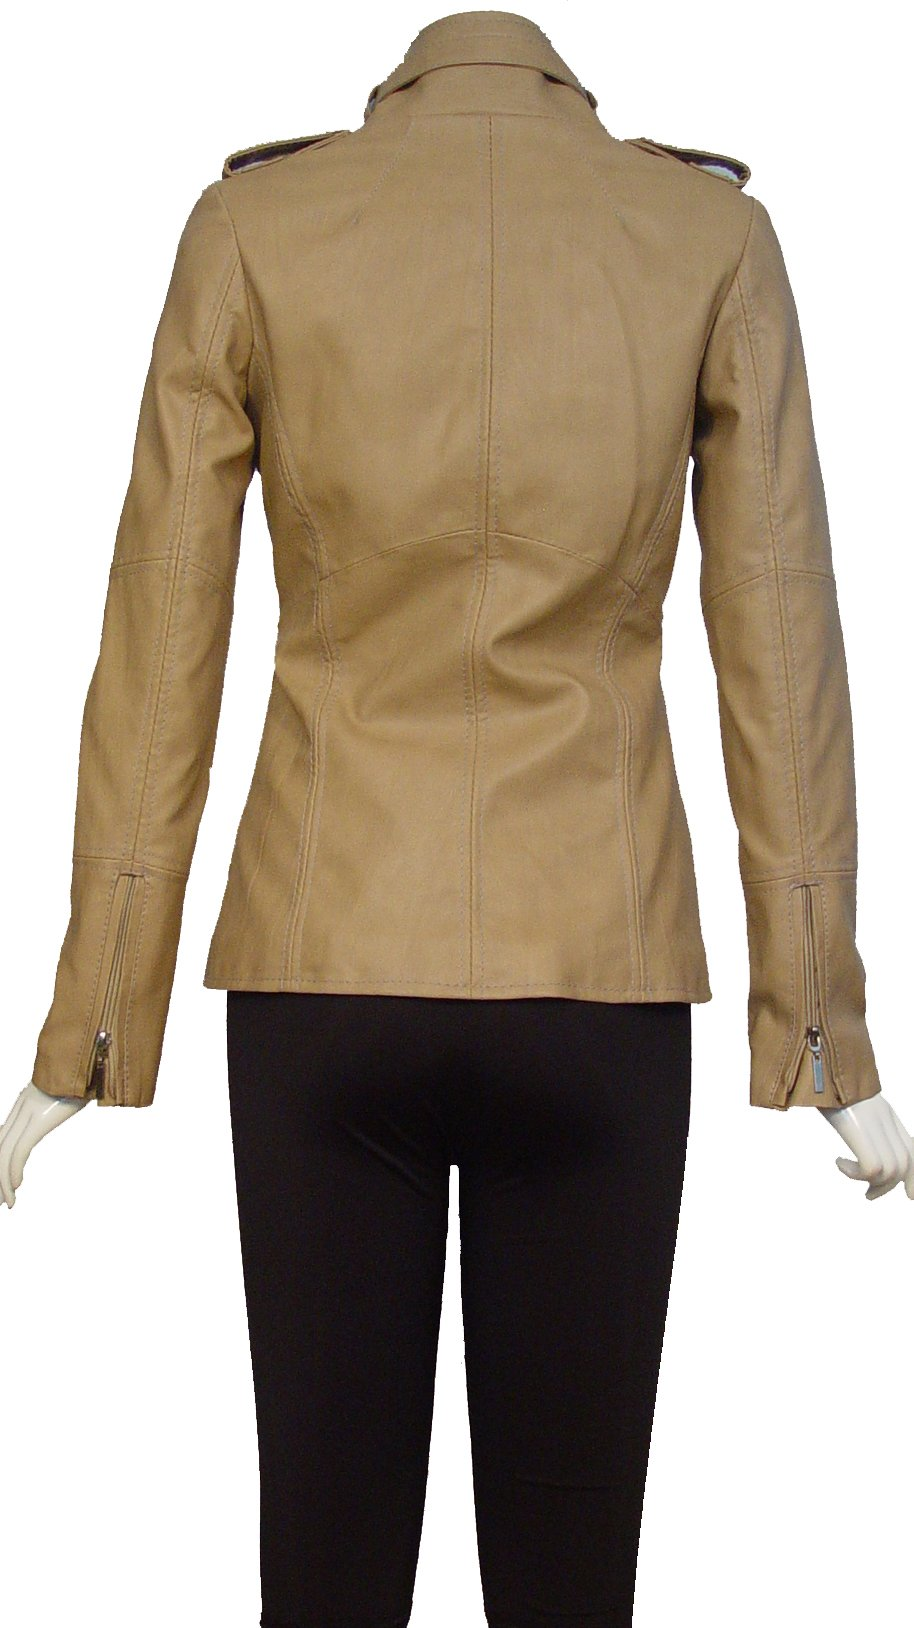 Nettailor 4205 Fine Leather Motorcycle Jackets Ladies Genuine Lambskin by NETTAILOR (Image #7)